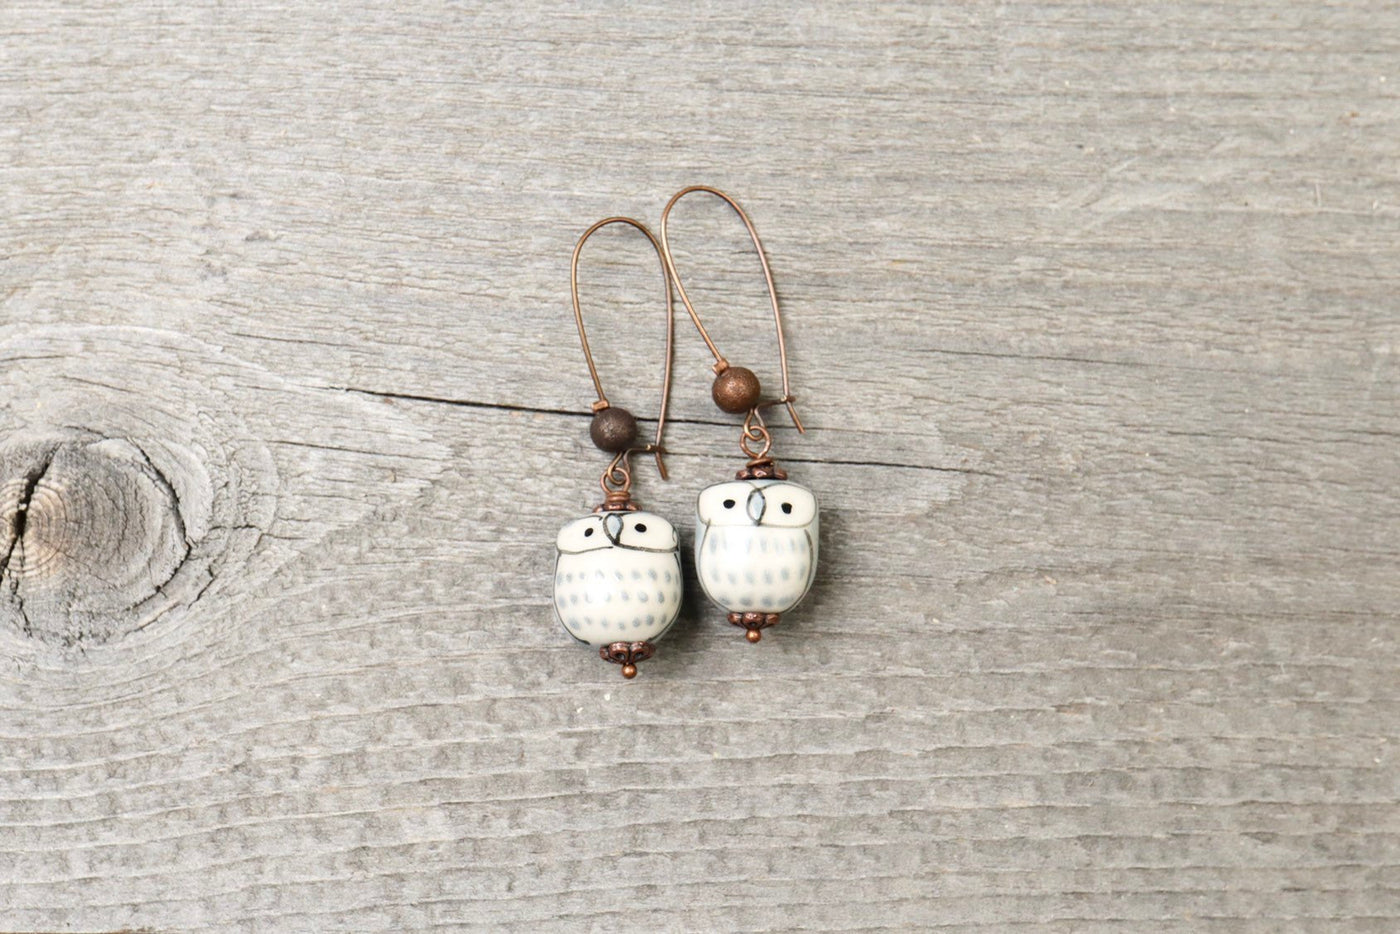 Gray Ceramic Owl Boho Earrings - Cute Bird Lovely Quirky Dangle Unique Animal Valentine's Day Adorable Simple Gift for Her Handmade Jewelry